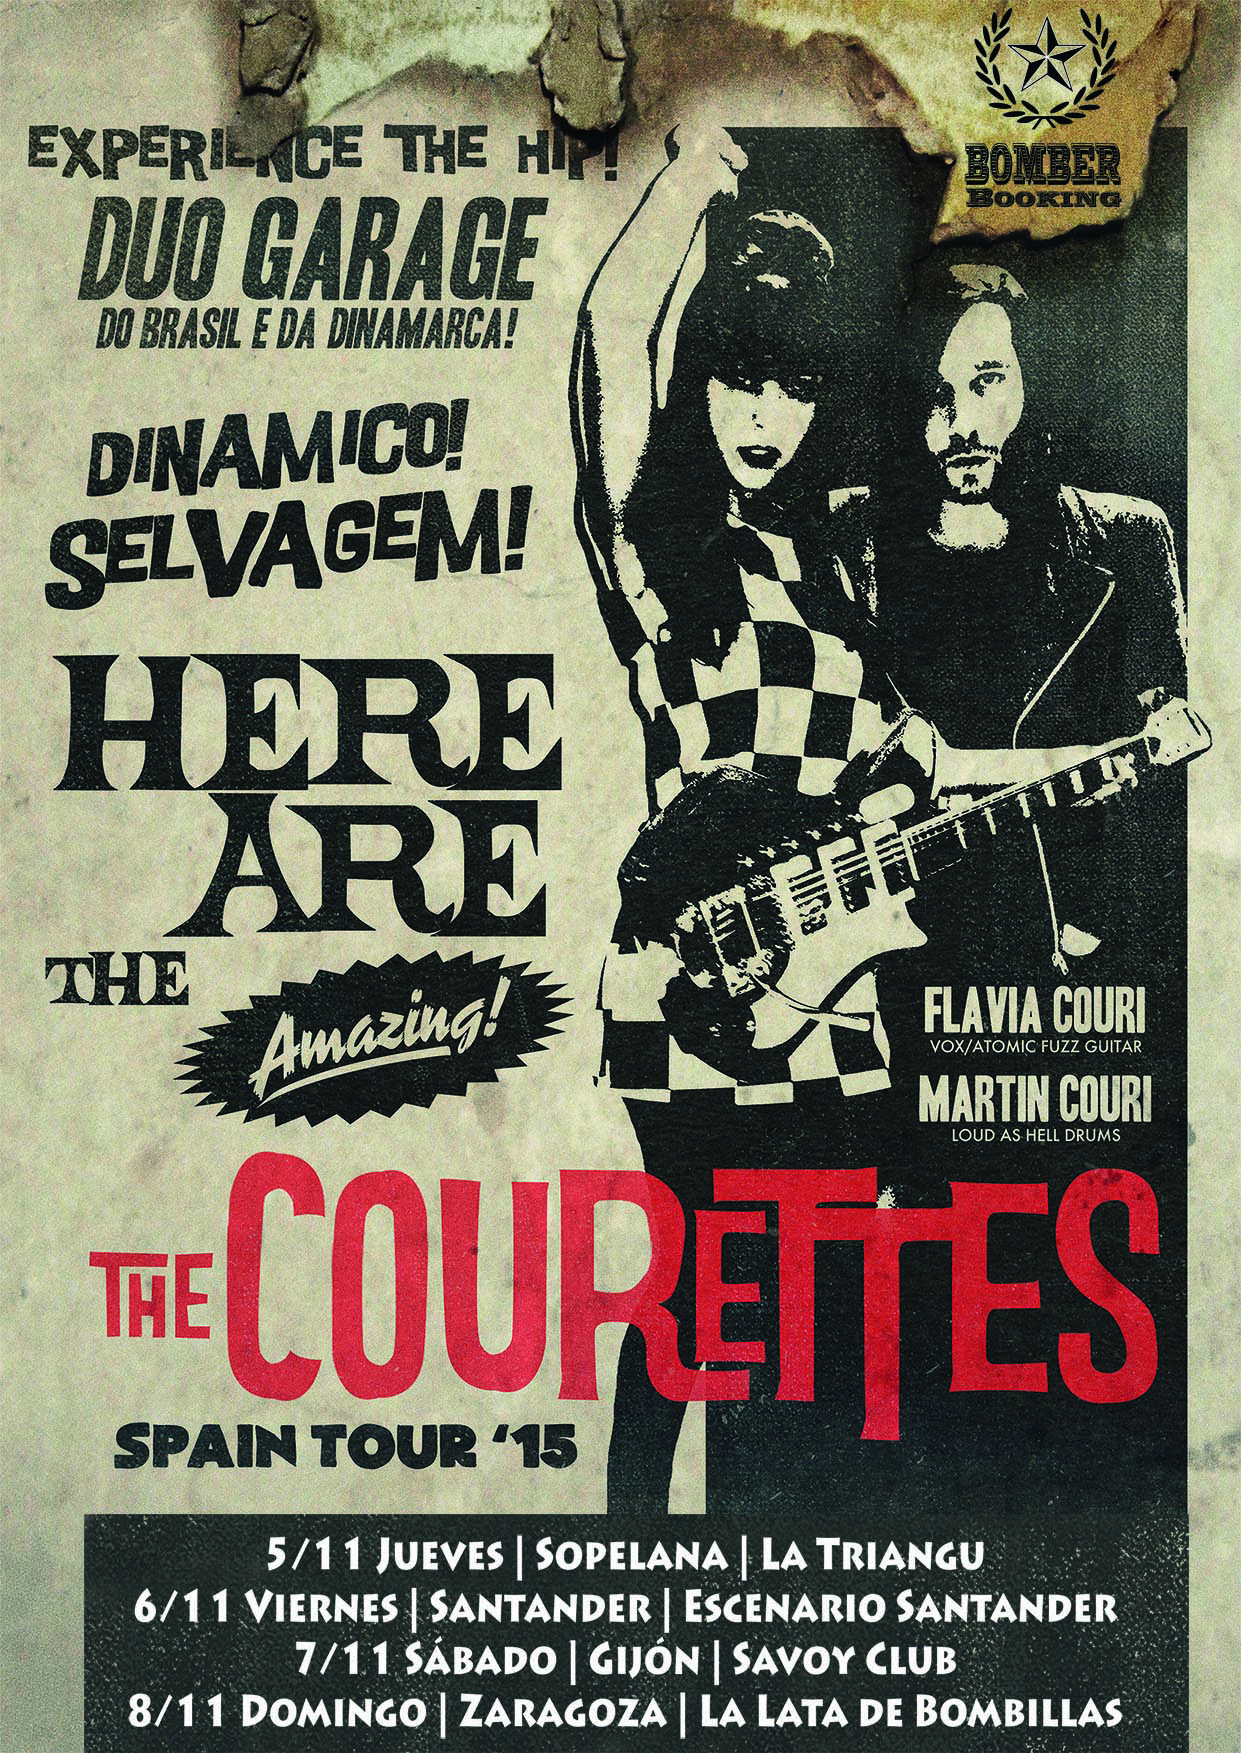 THE COURETTES IBERIAN TOUR 2015